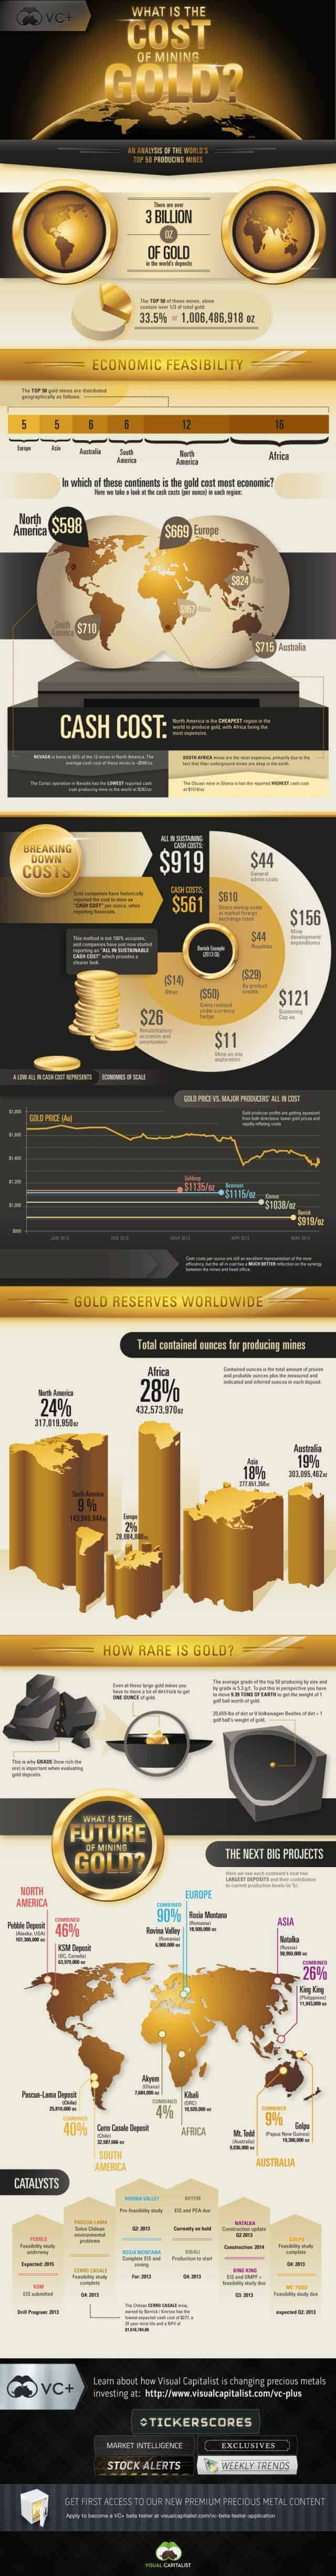 what-is-cost-of-mining-gold-640x4902